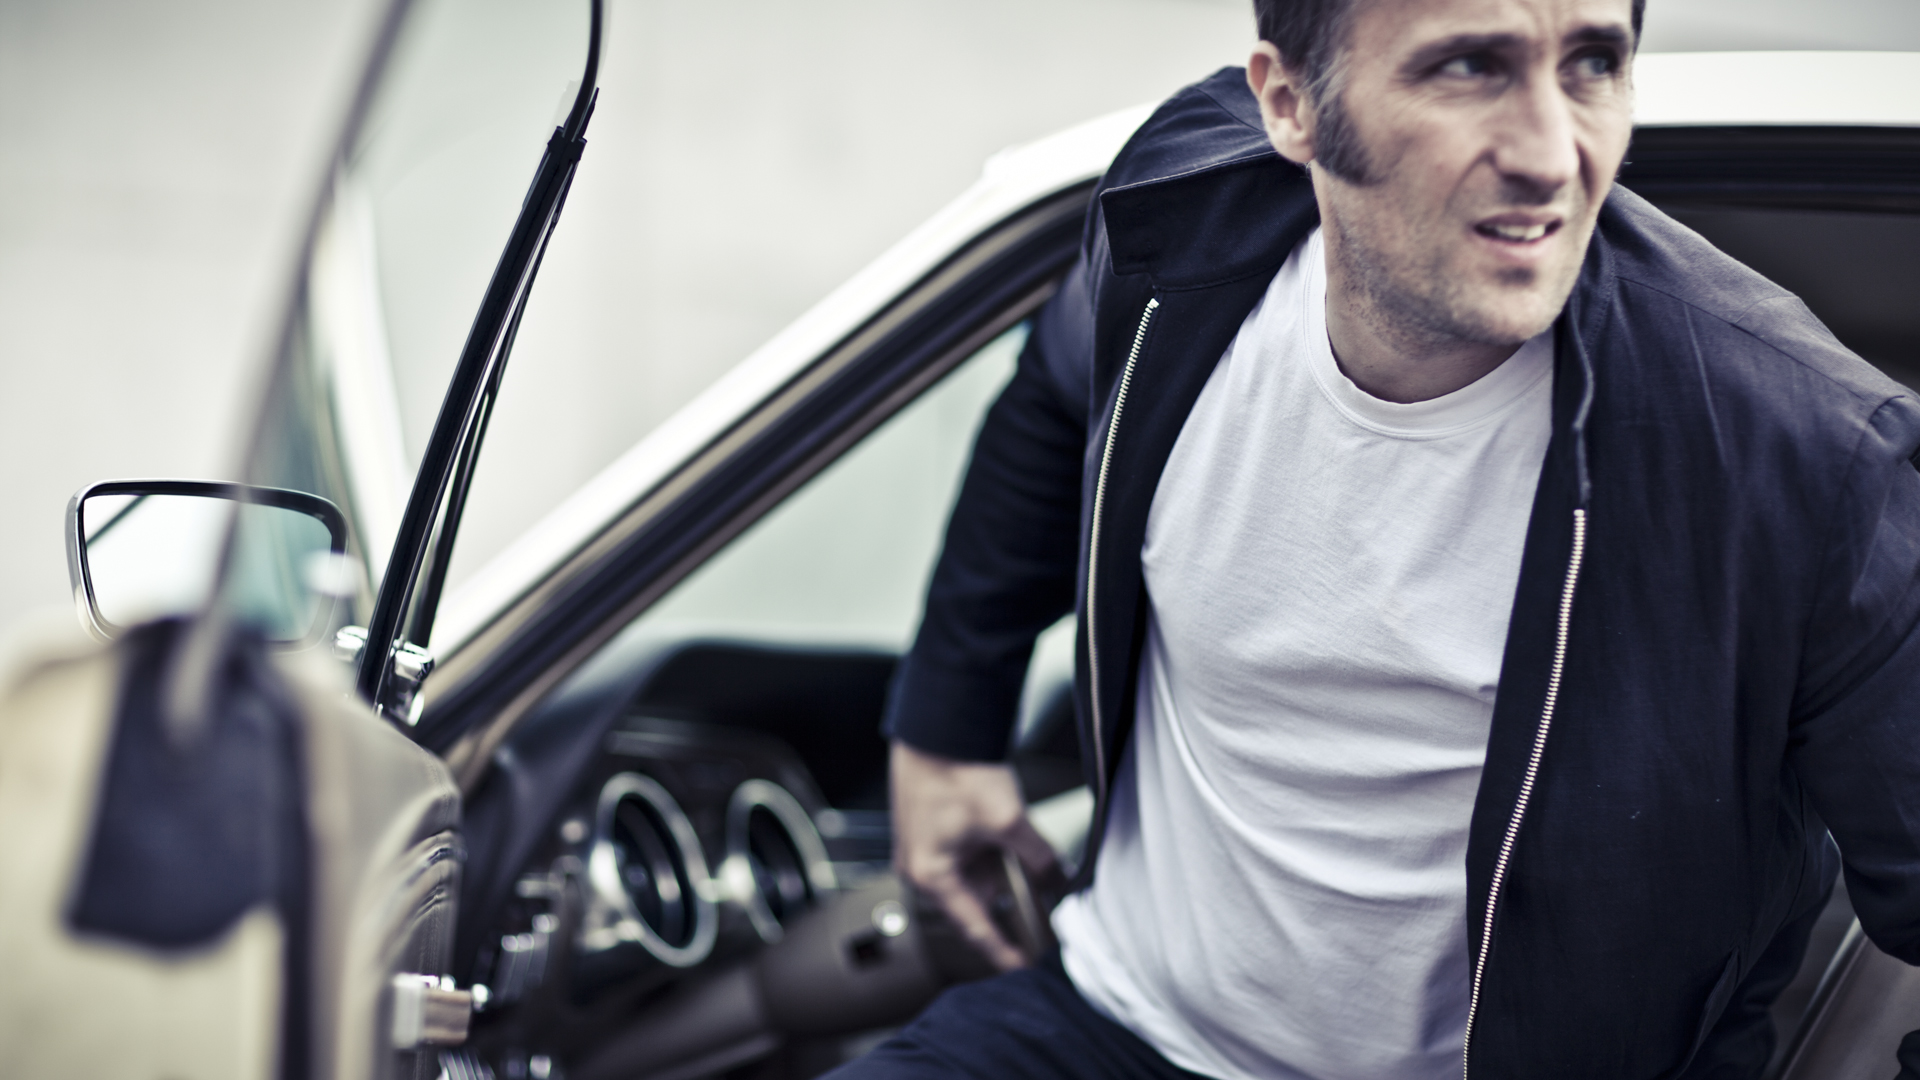 Pascal & his Ford Mustang / Laurent Nivalle (9)